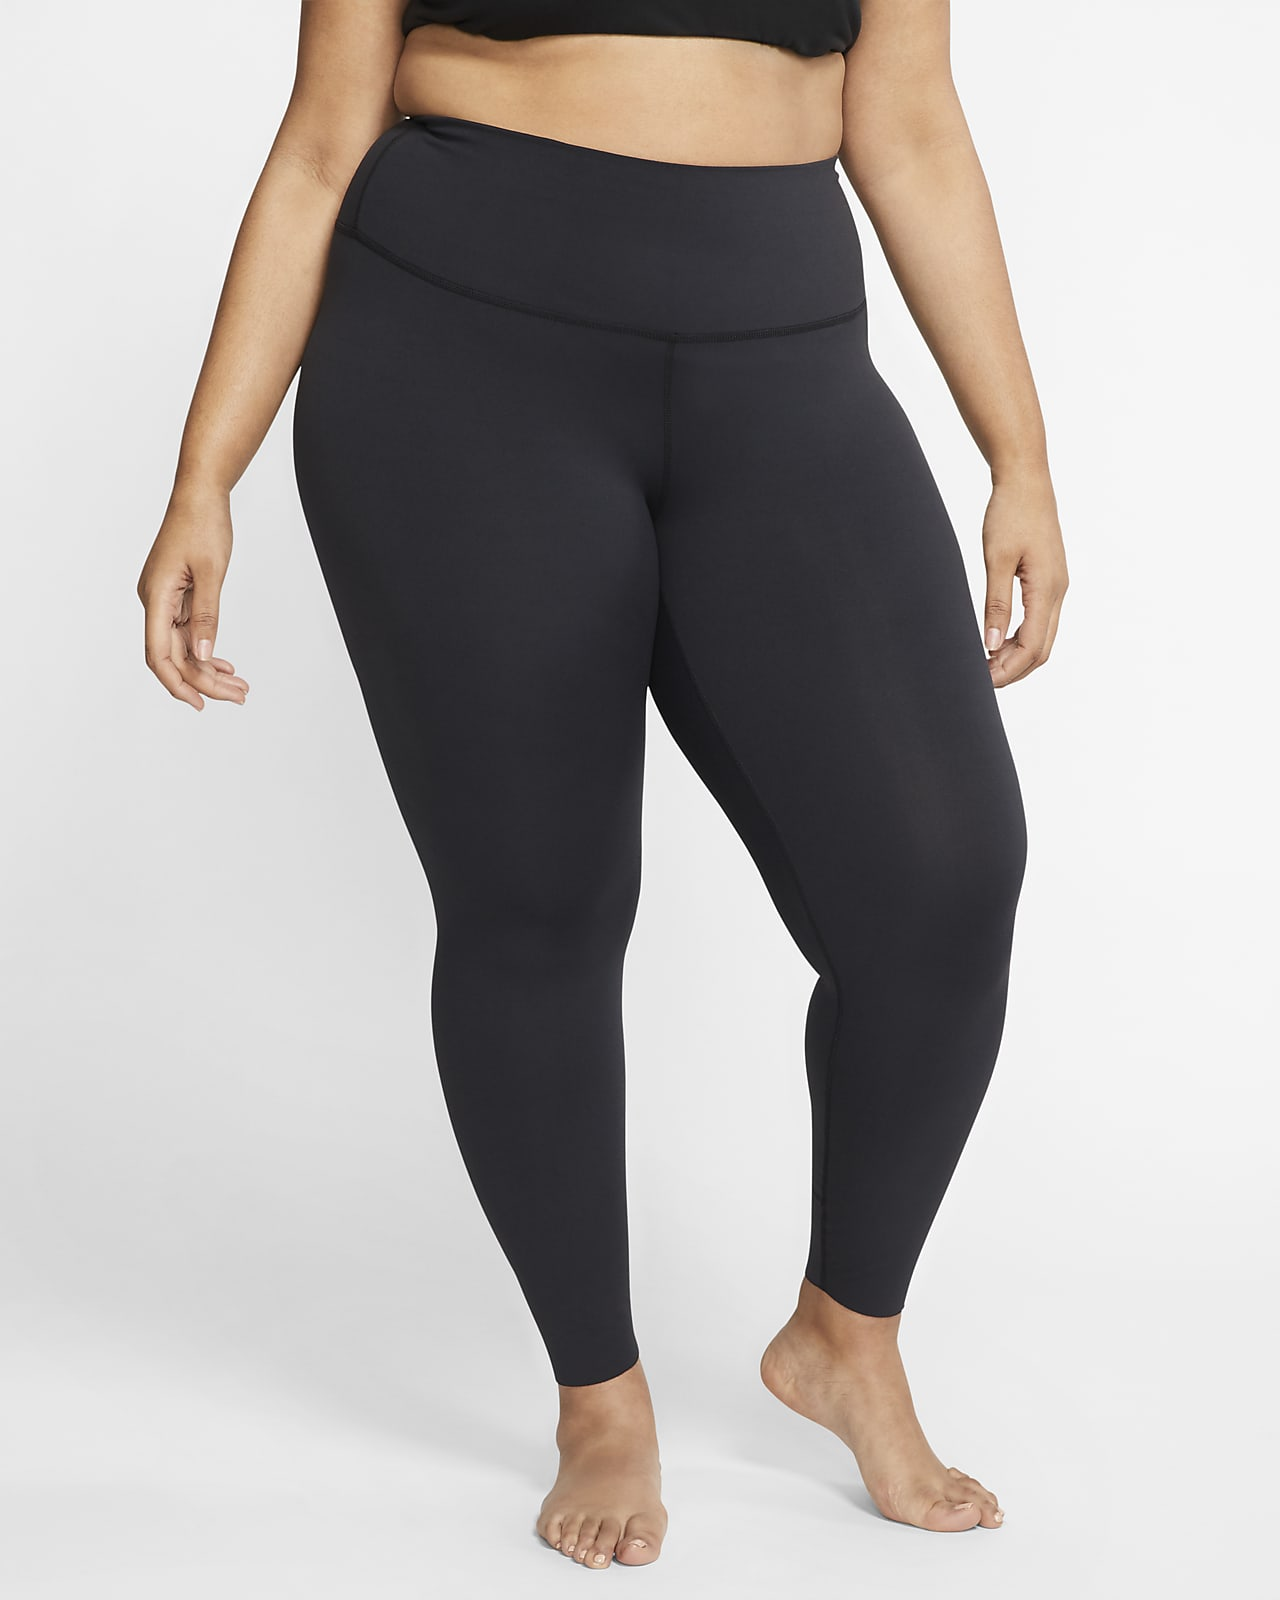 Nike Yoga Luxe Women's Infinalon 7/8 Leggings (Plus size)